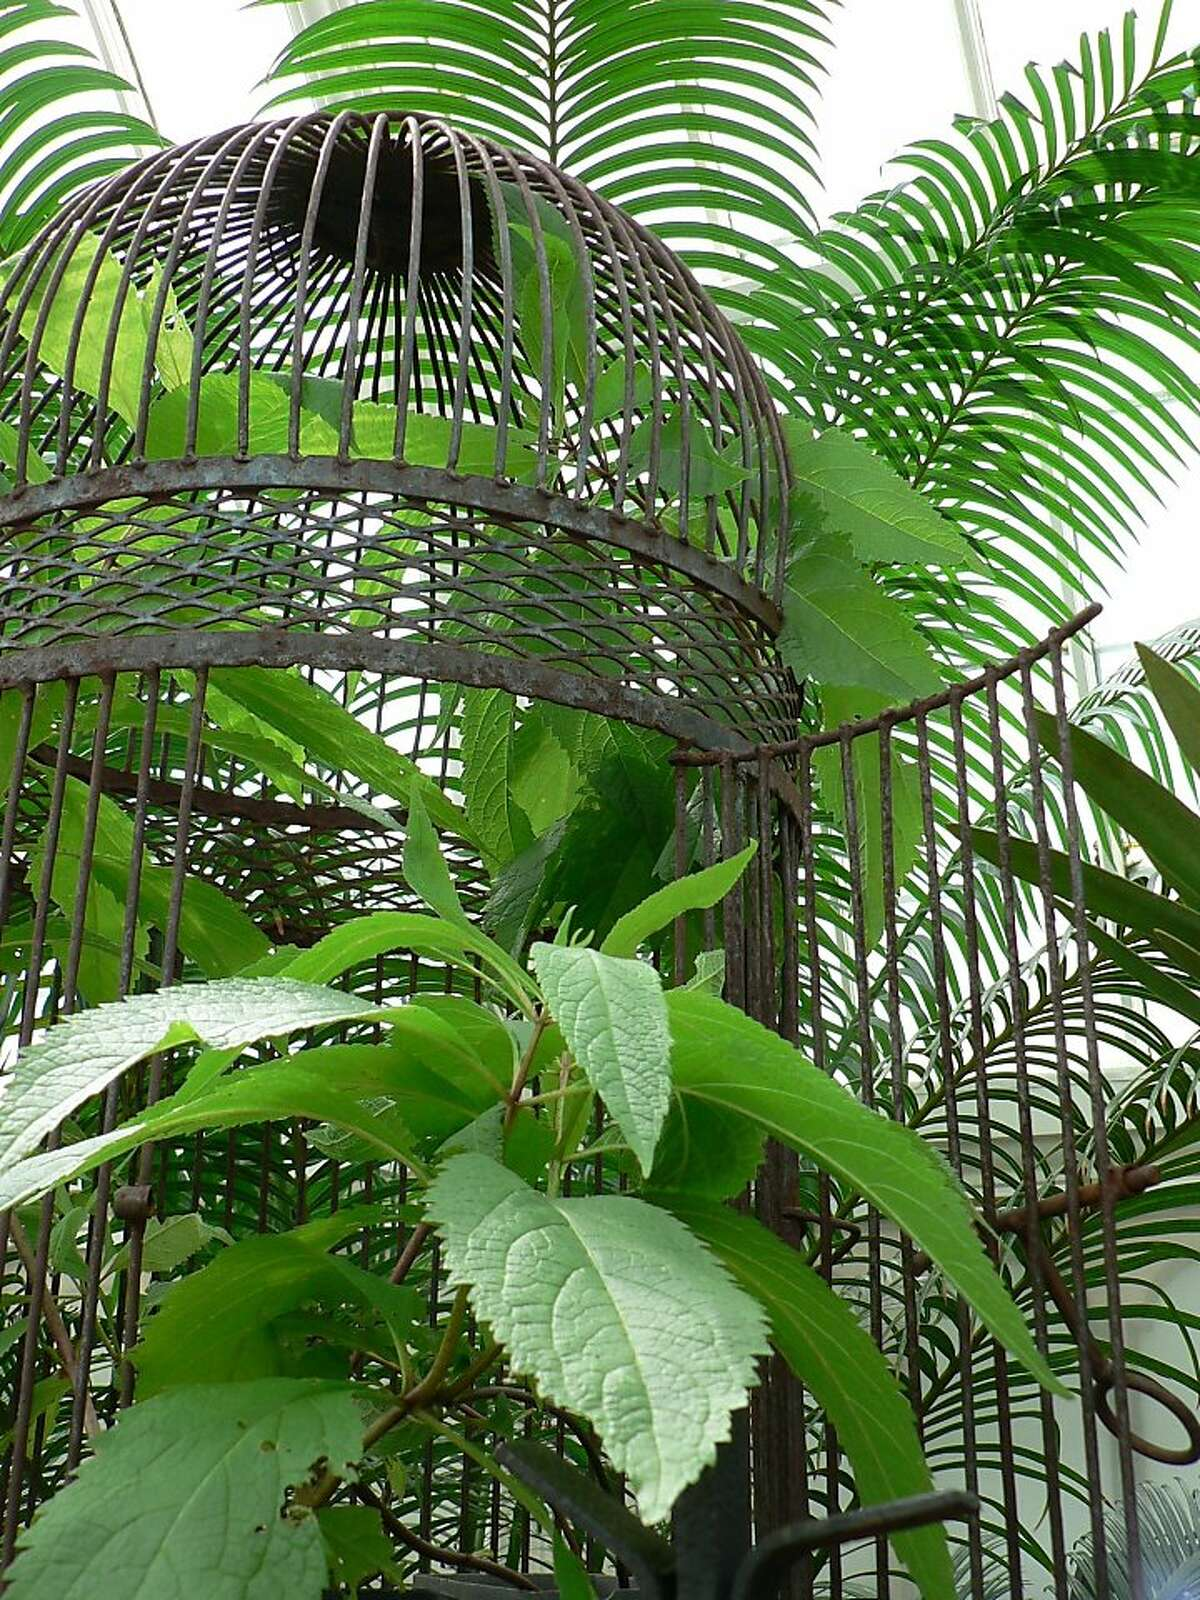 White snakeroot in the cage.